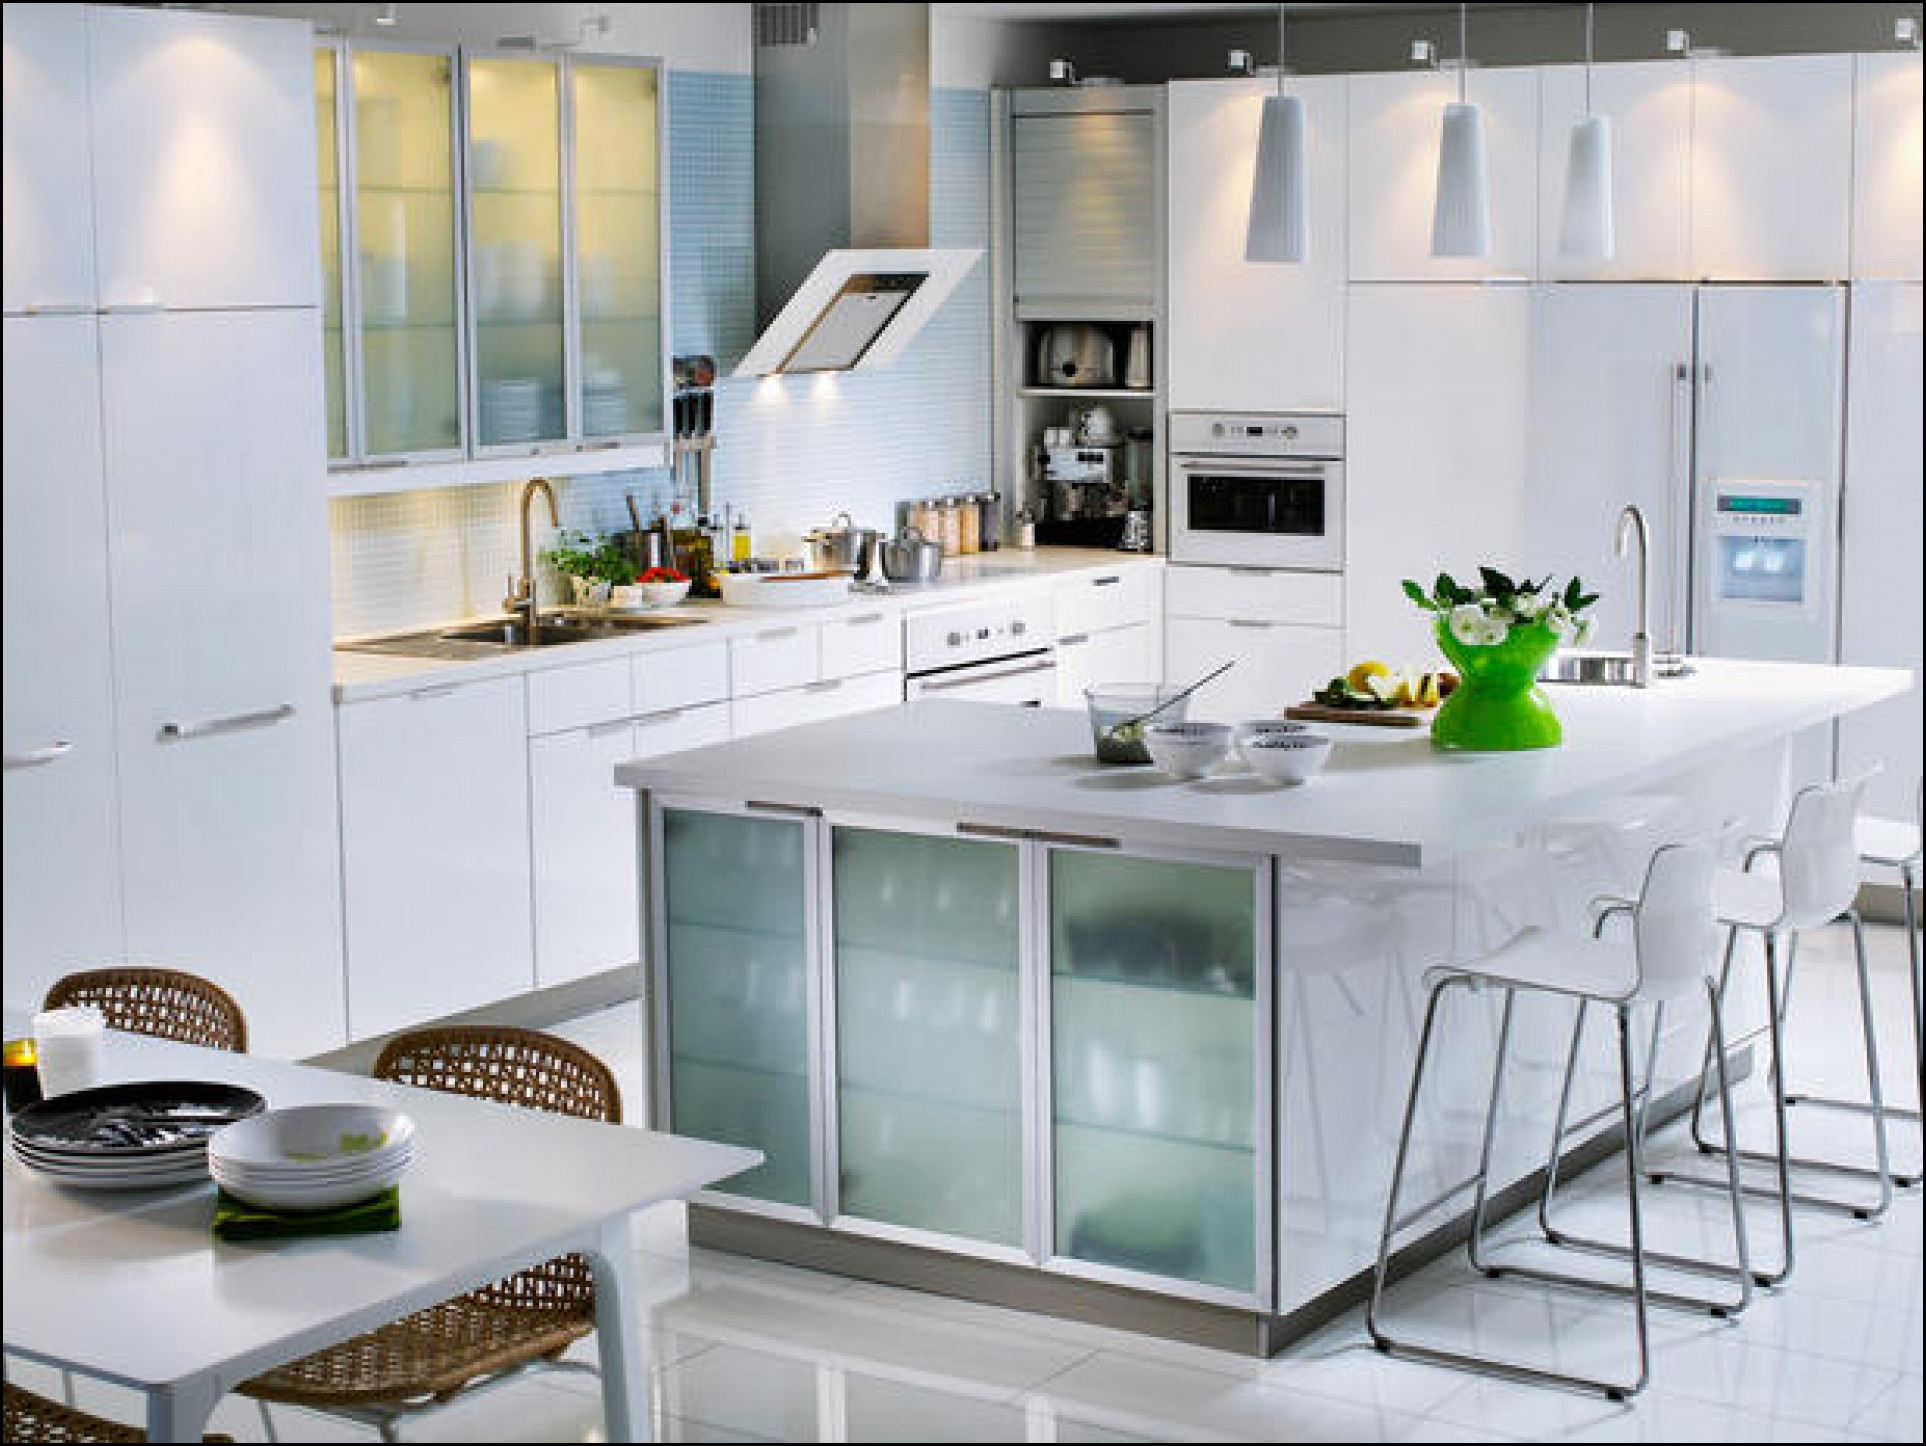 Incroyable White Ikea Kitchens Pictures, Free Of Charge On The Web Kitchen Cabinets  With Gray Kitchen Cabinets With Self Confidence.